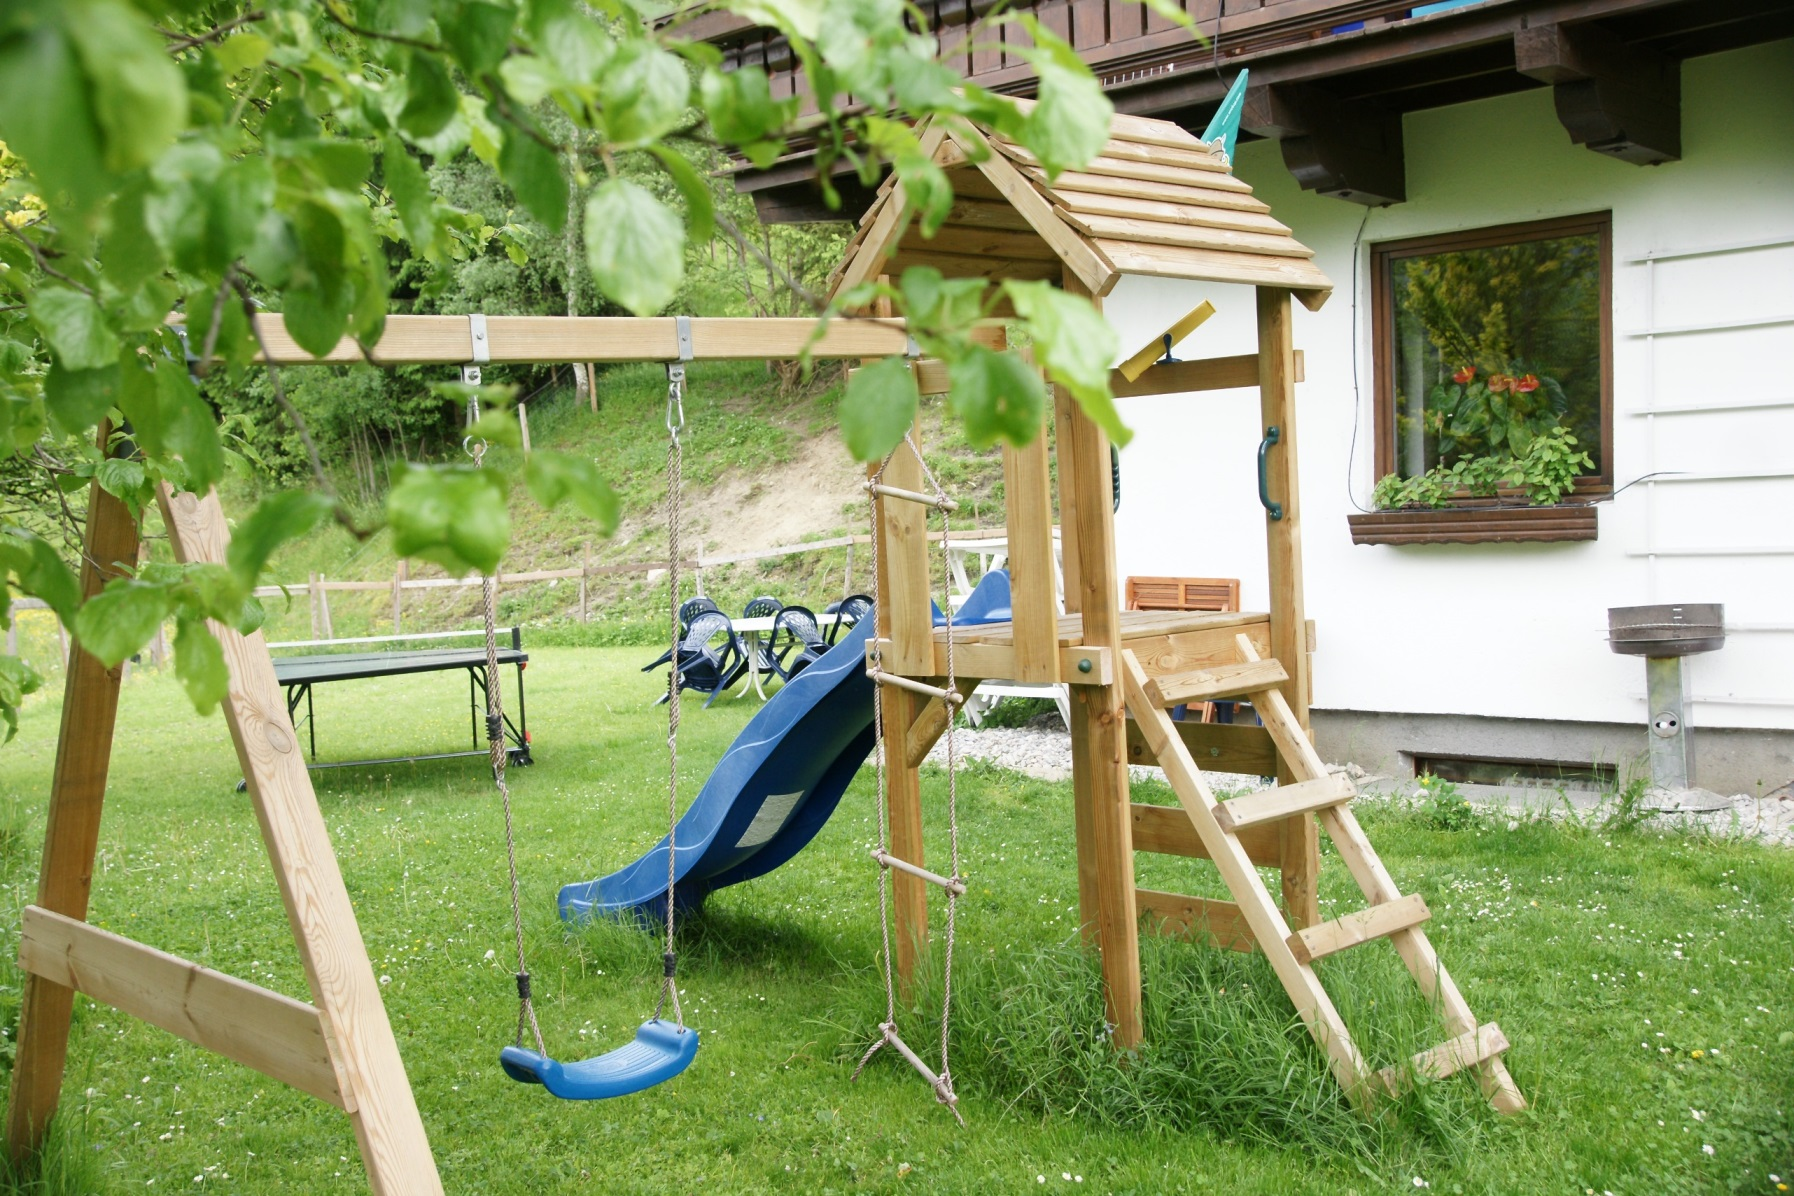 playground play room and garden with sun beds u2022 teglbauernhof